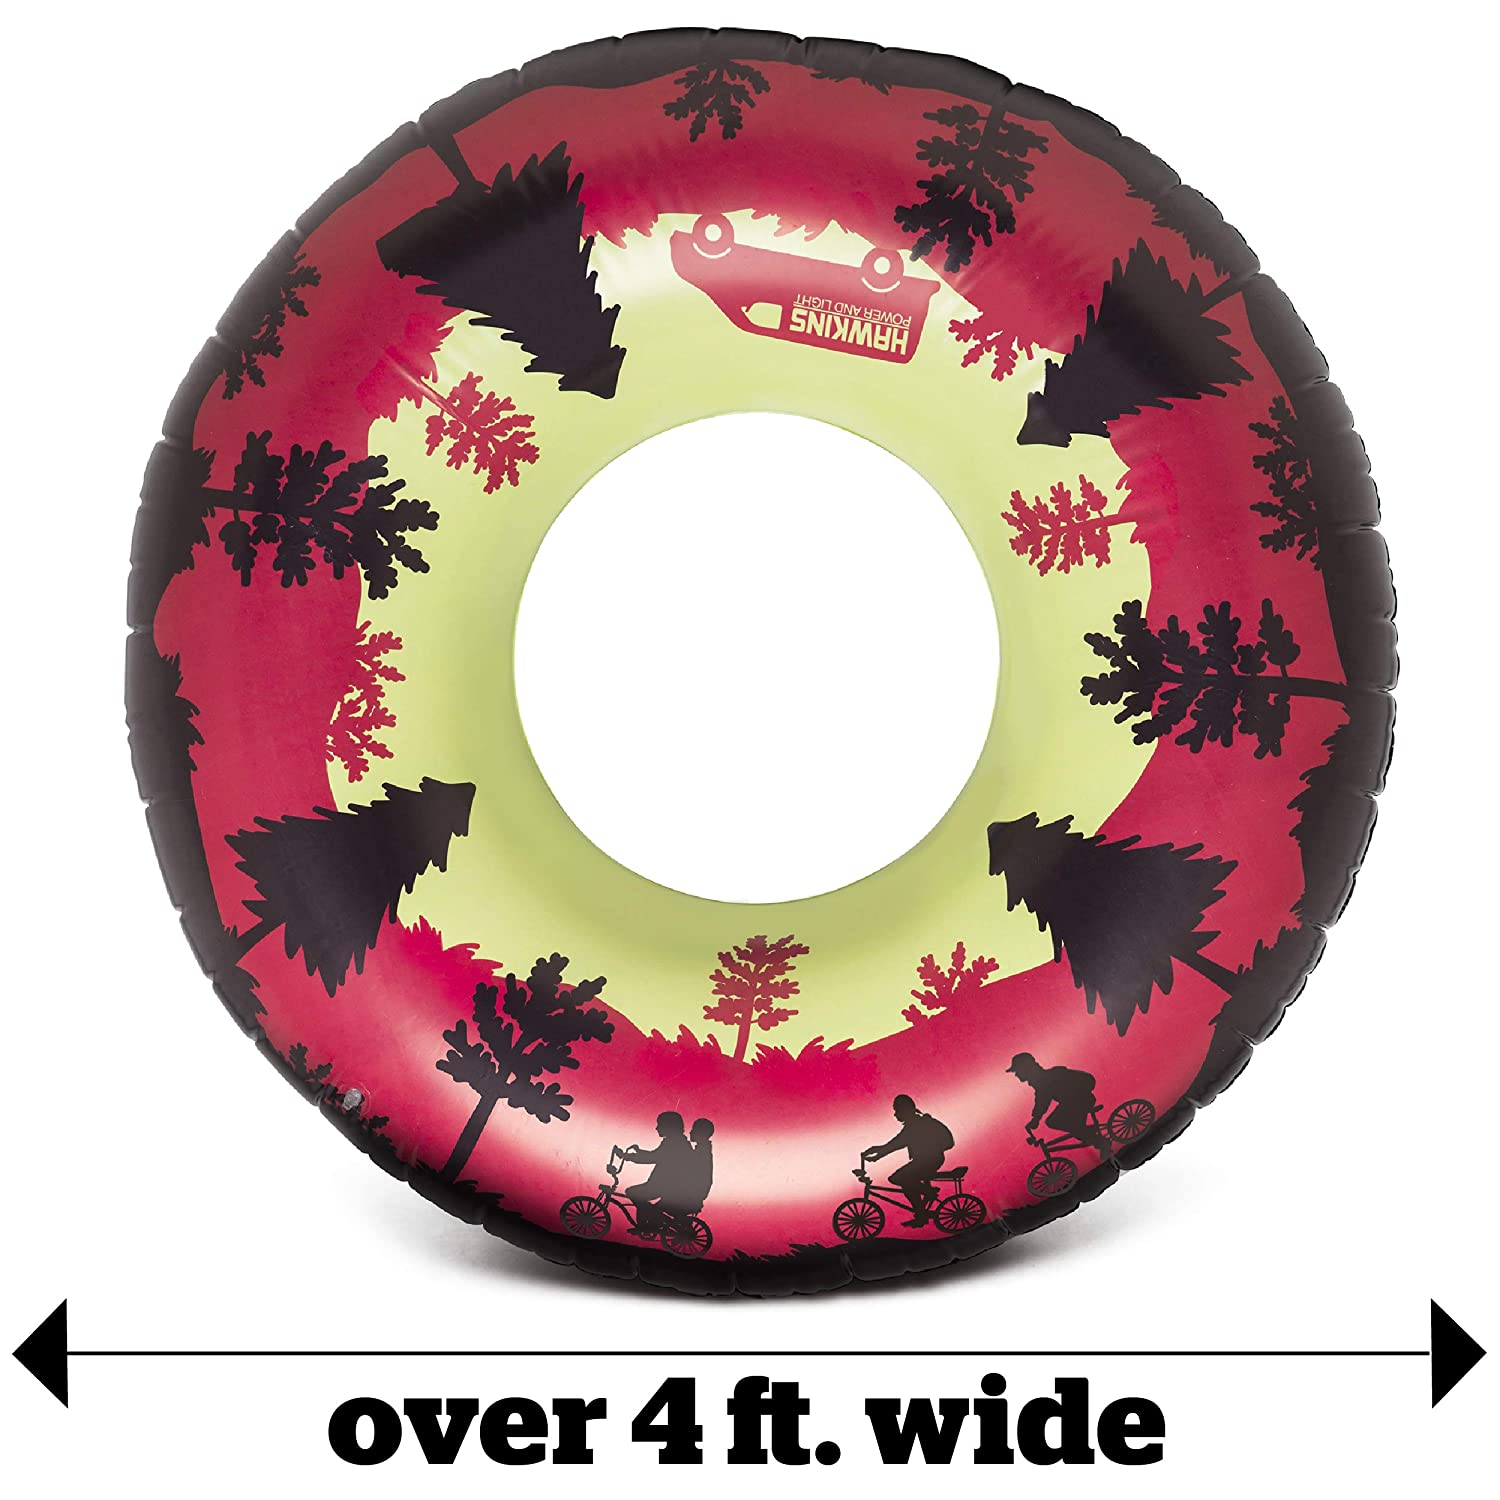 Easy to Inflate//Deflate and Clean Stranger Things Upside Down Pool Tube Makes a Great Gift Idea Reversible 4 Pool Float with Stranger Things Theme BigMouth Inc